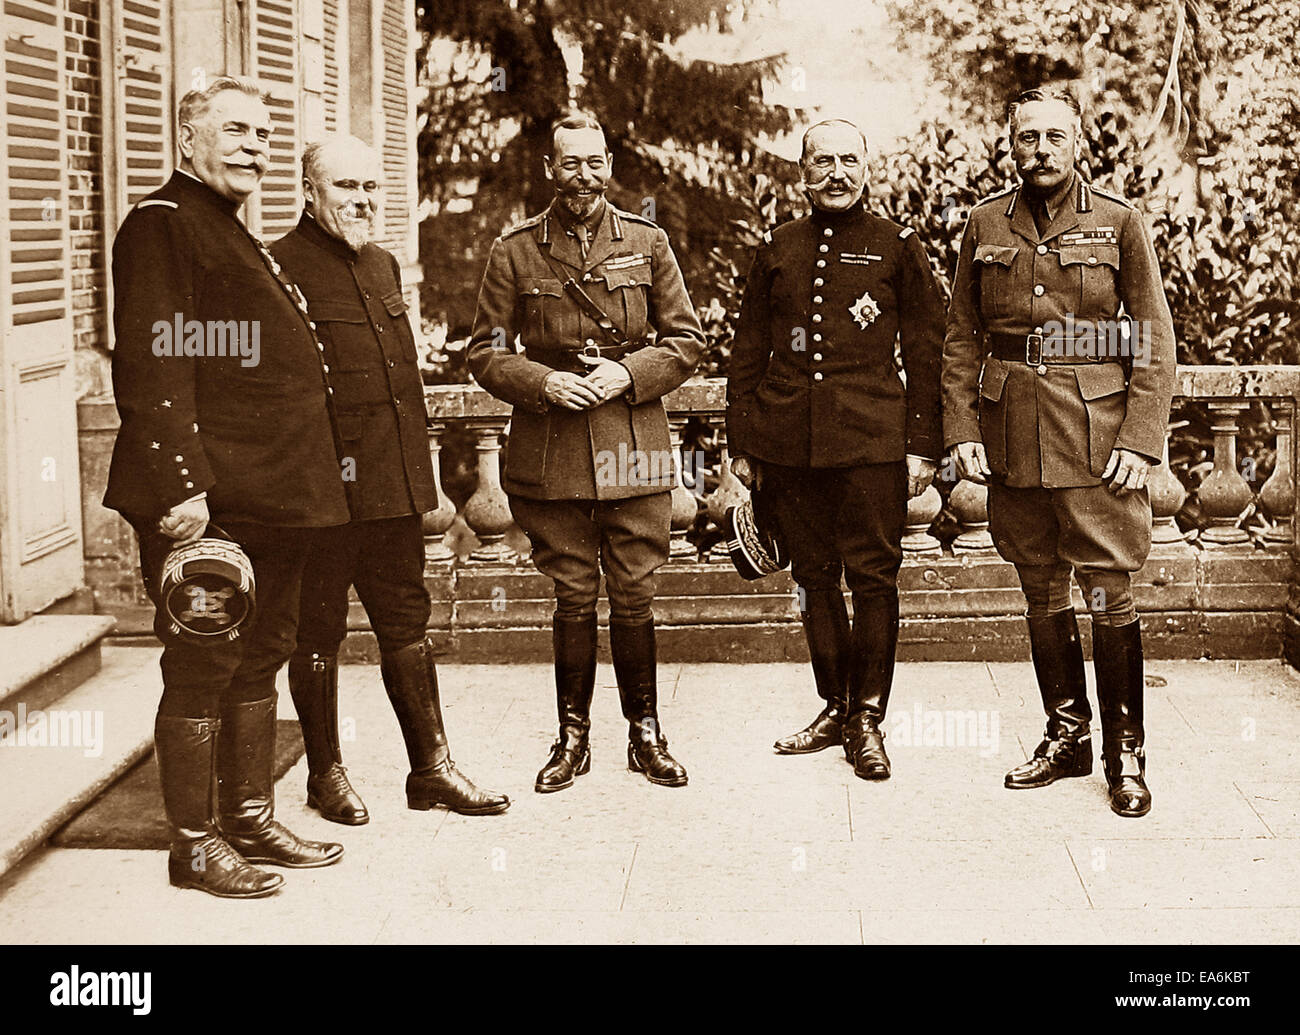 King George V President Poincare Sir Douglas Haig Marshall Foch and general Joffre during WW1 - Stock Image